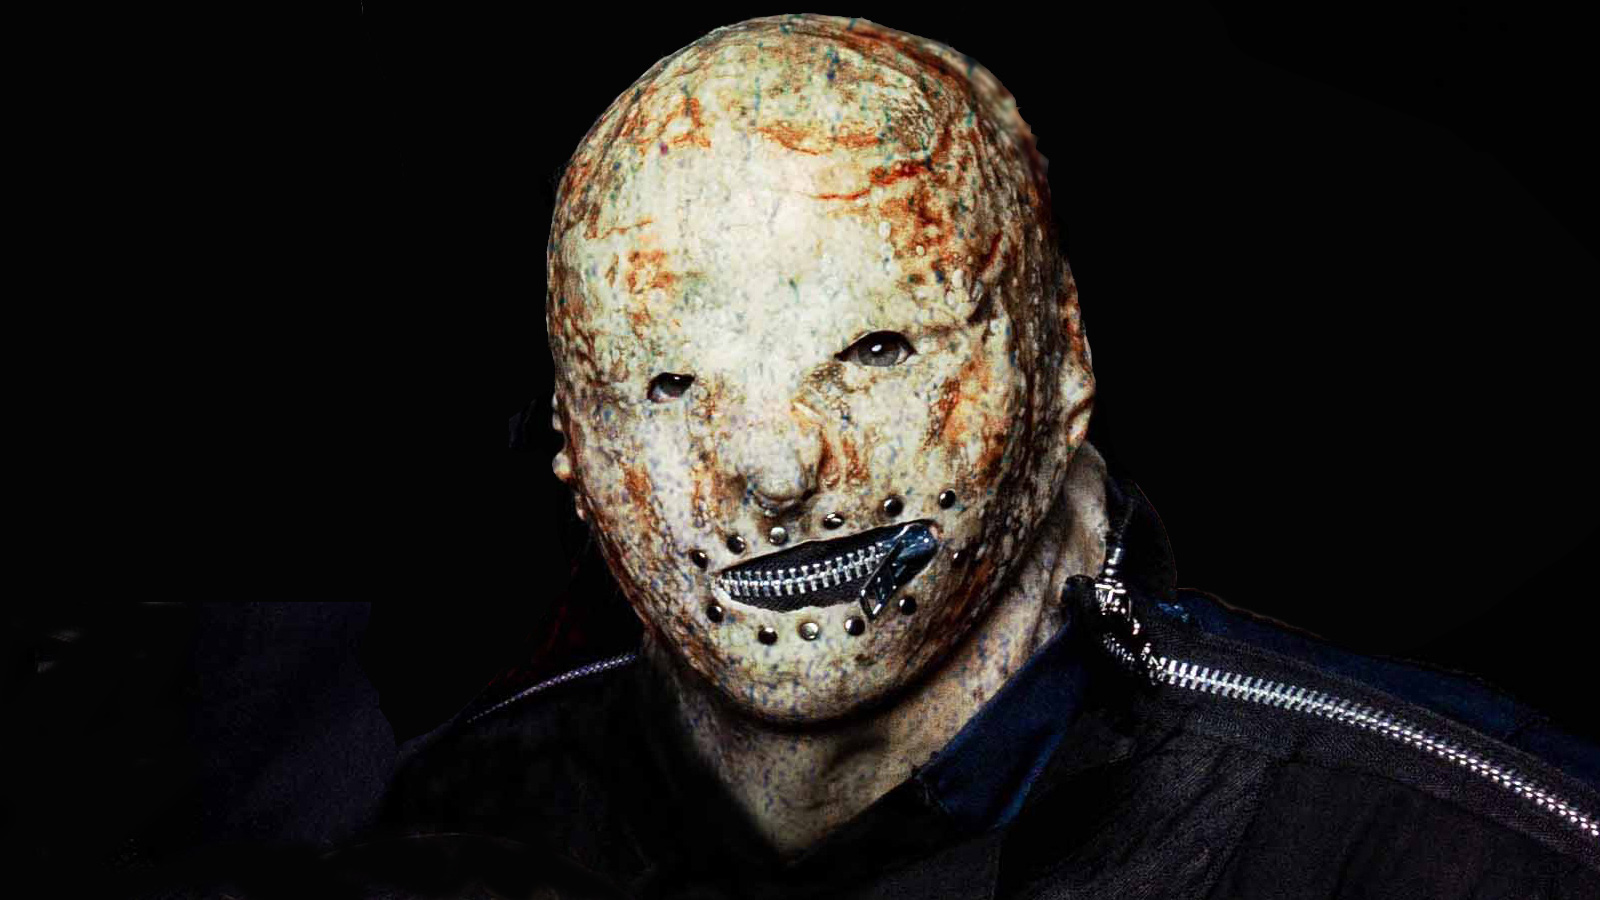 Does New Video Reveal the Identity of Slipknot's Mystery Member?